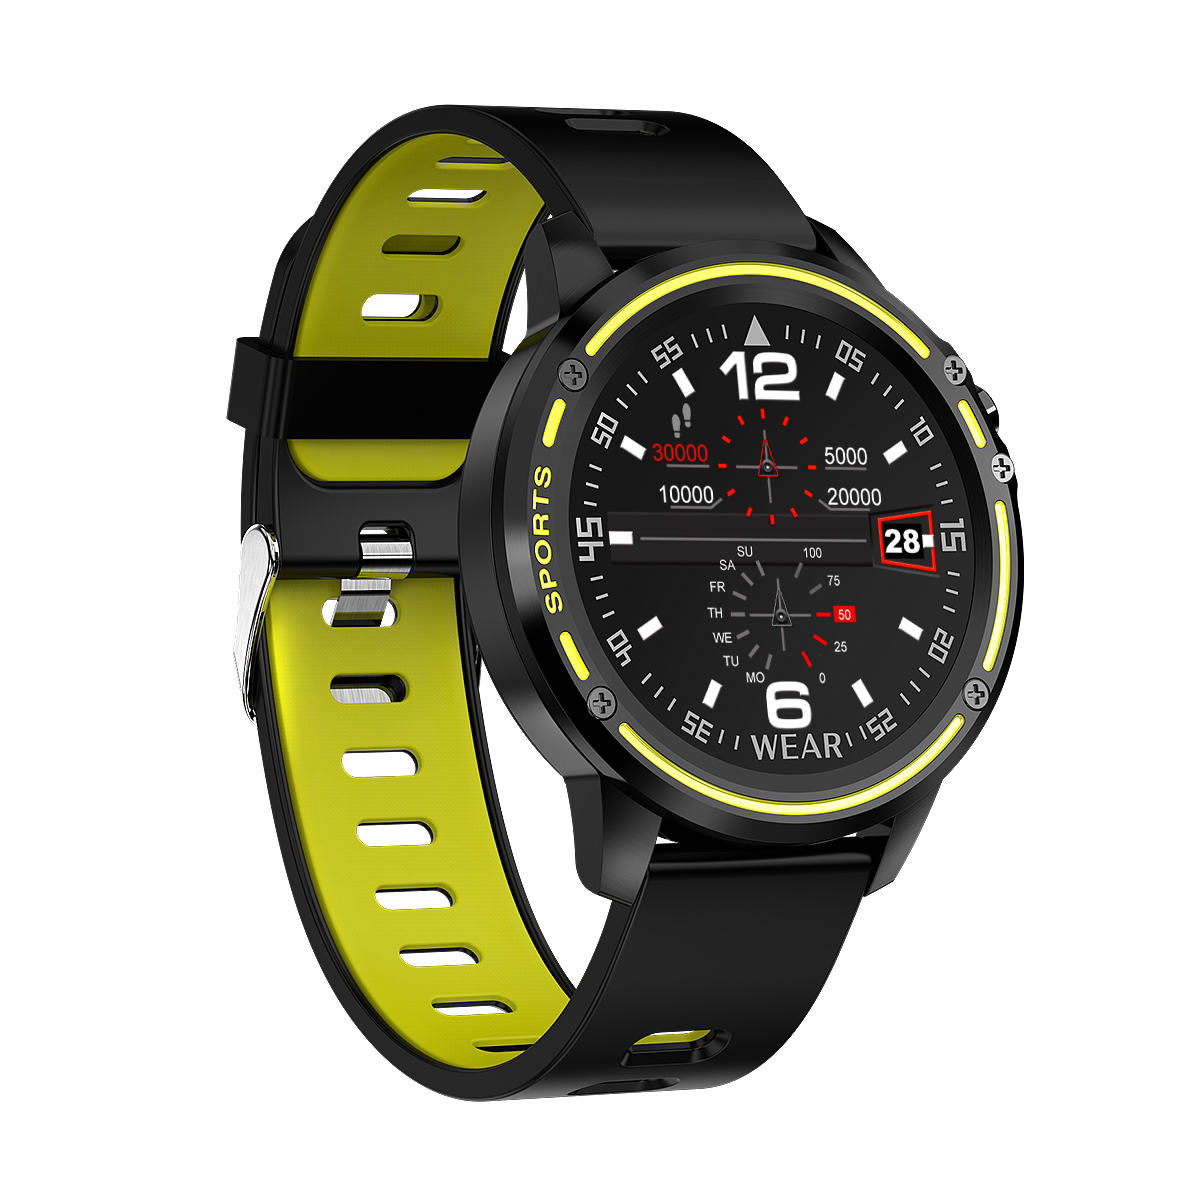 2019 Men Women Smart Watch L8 Heart Rate Smart Watches Watch Relogio Android Psg Amazefit Ticwatch Android Amazifit Bip Appel